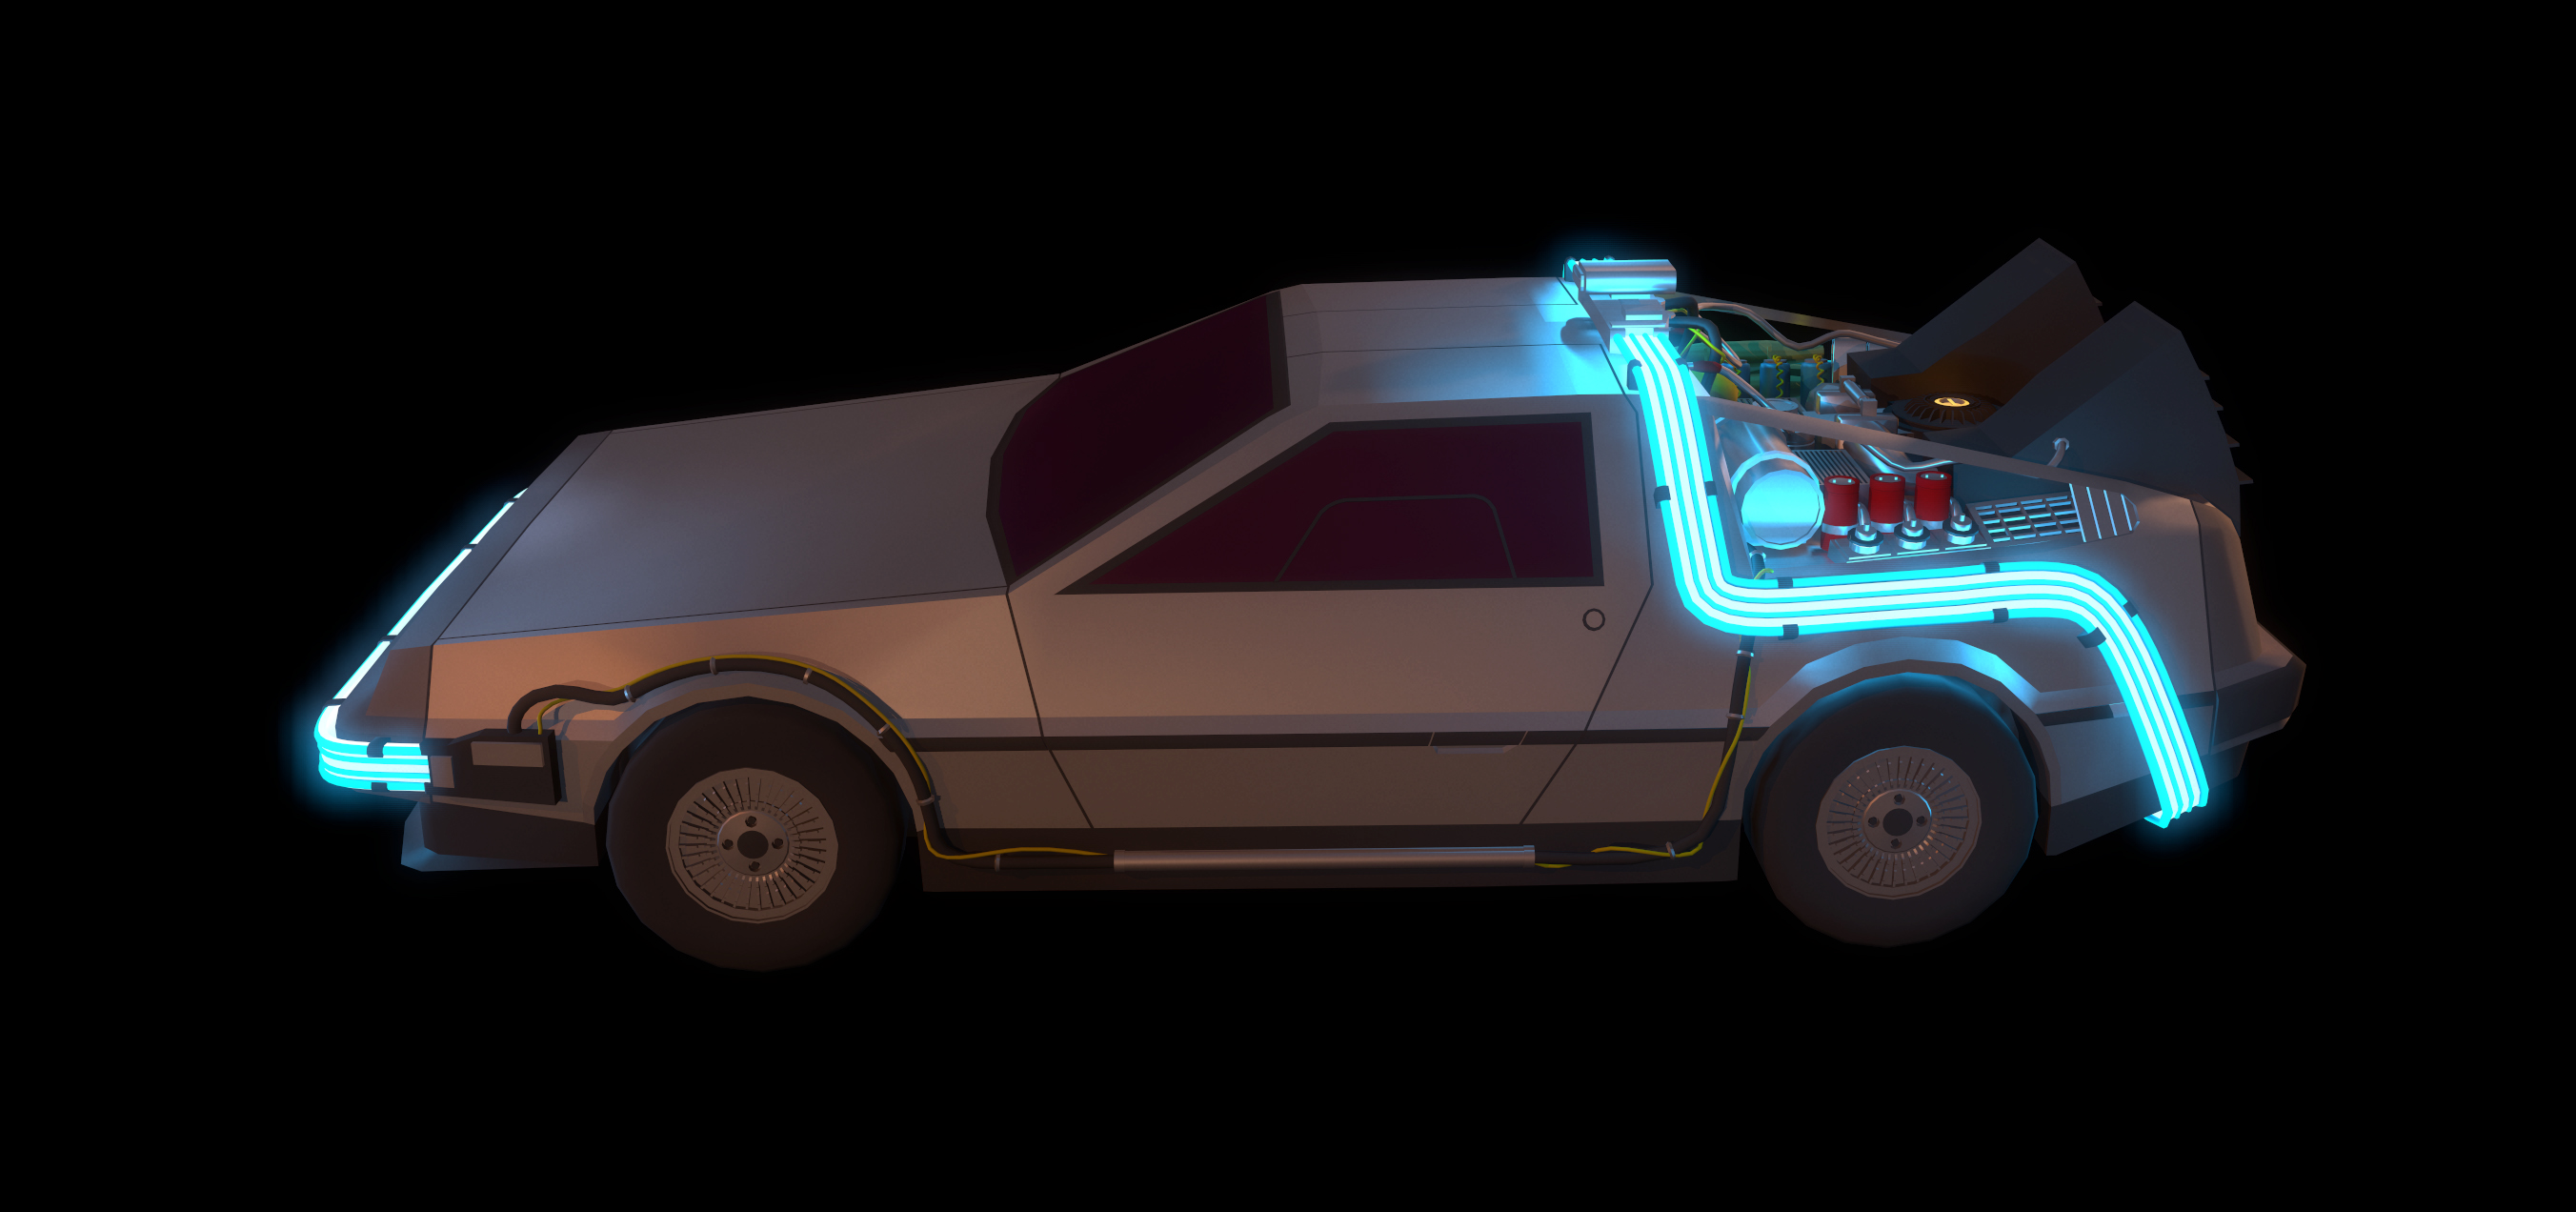 DeLorean DMC - 12 _ Low Poly Tutorial